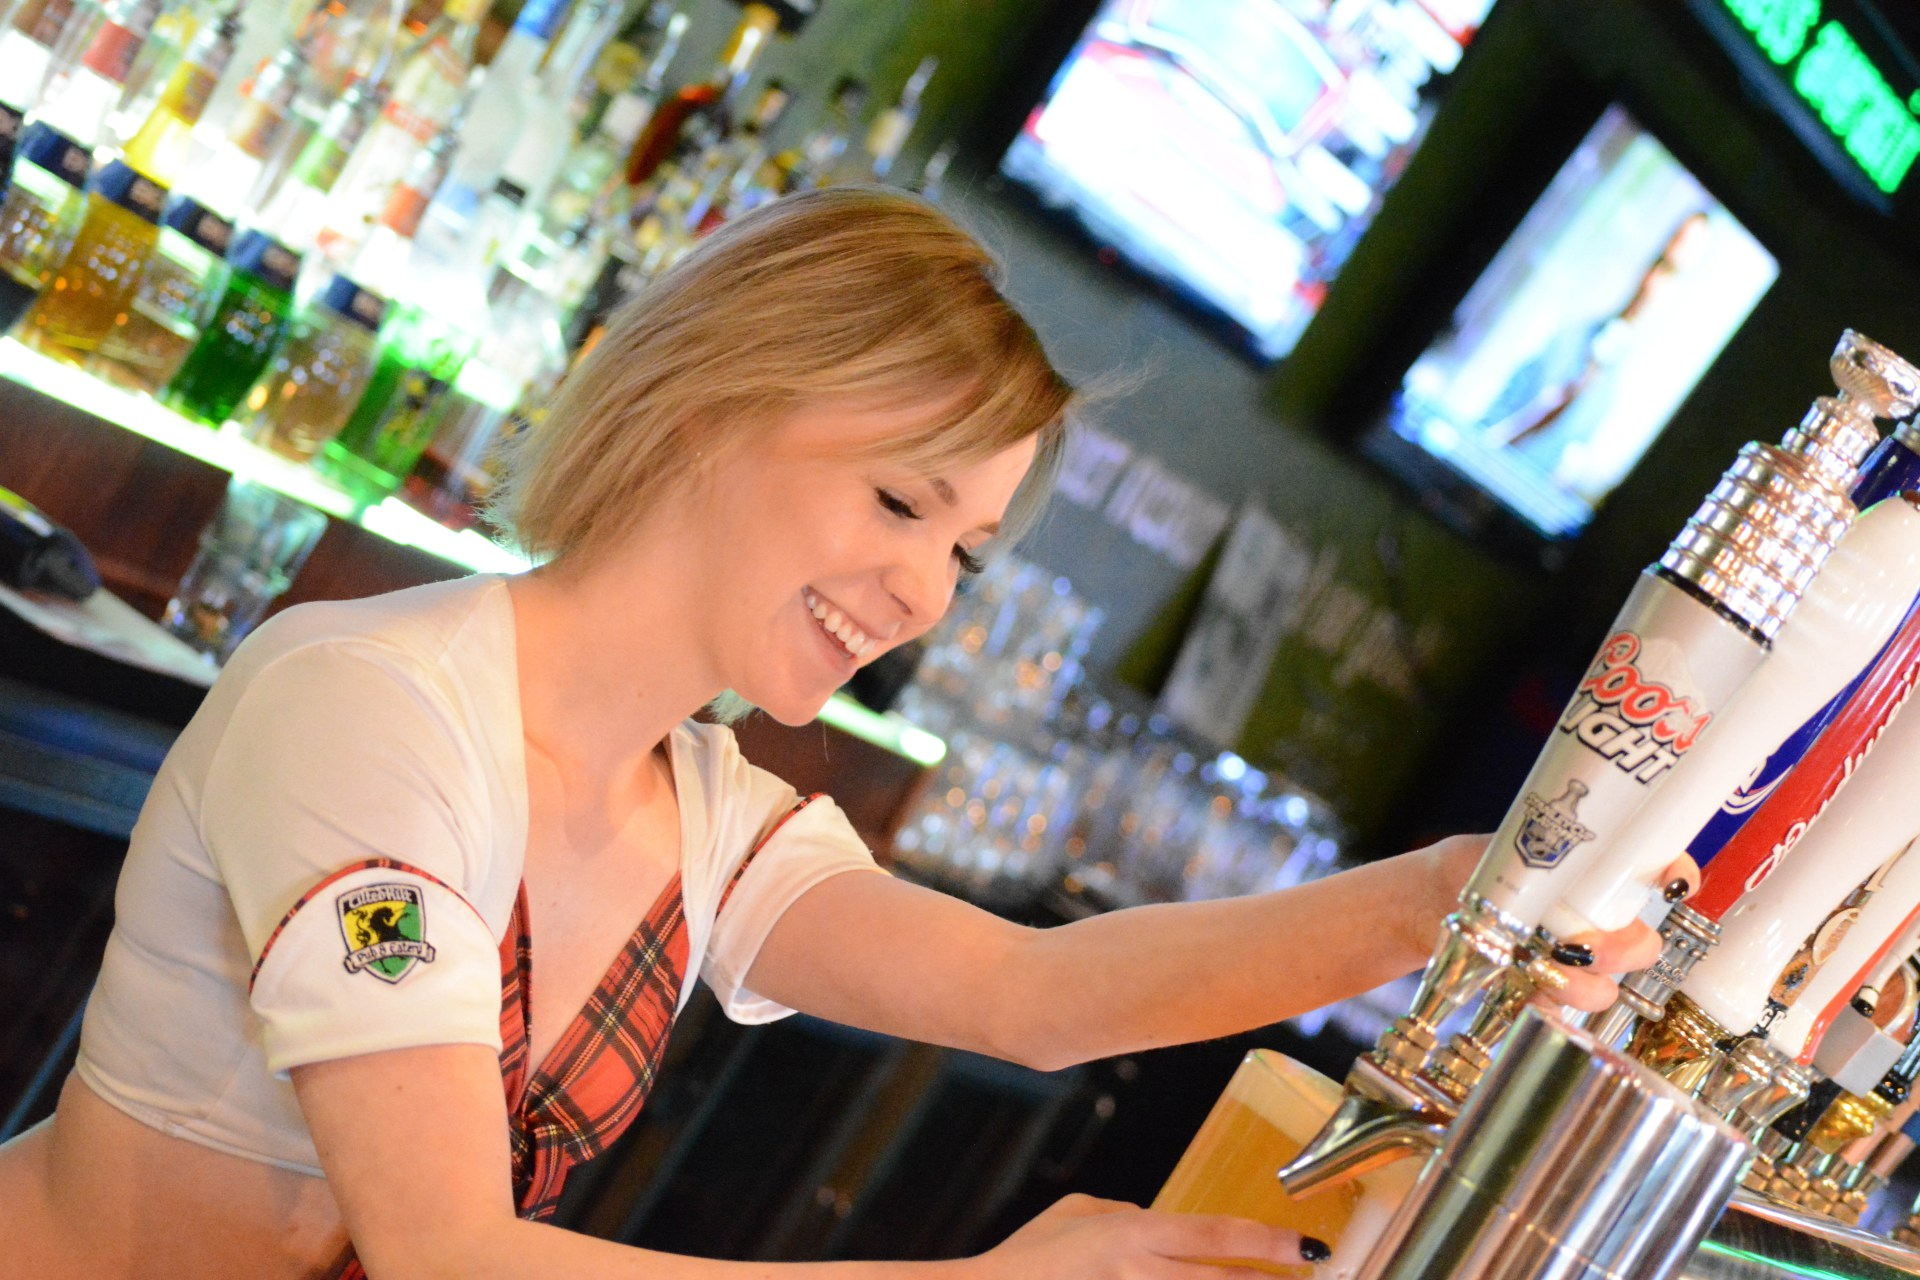 Tilted Kilt Girl At Work